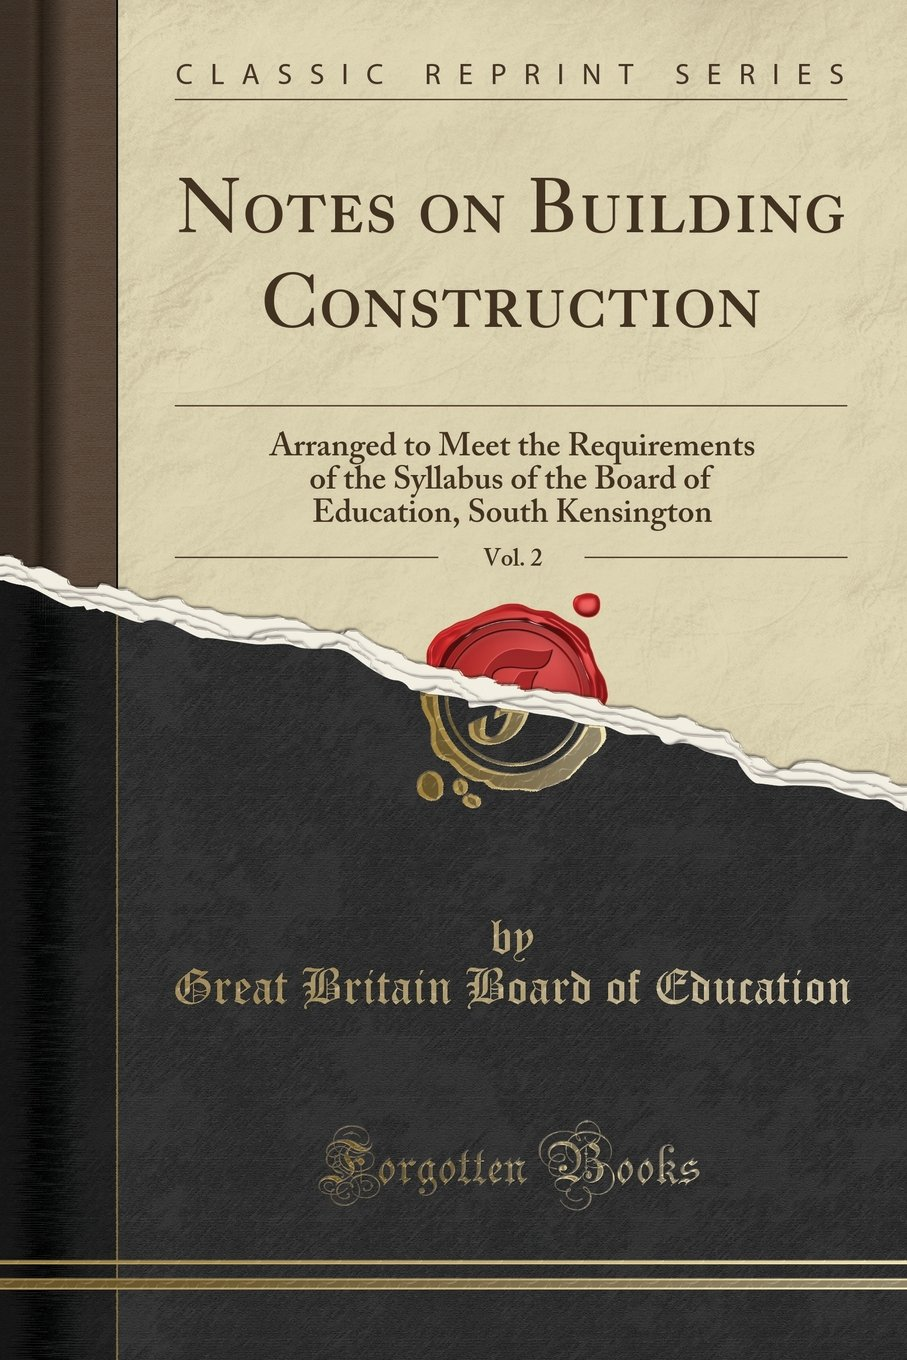 Download Notes on Building Construction, Vol. 2: Arranged to Meet the Requirements of the Syllabus of the Board of Education, South Kensington (Classic Reprint) ebook